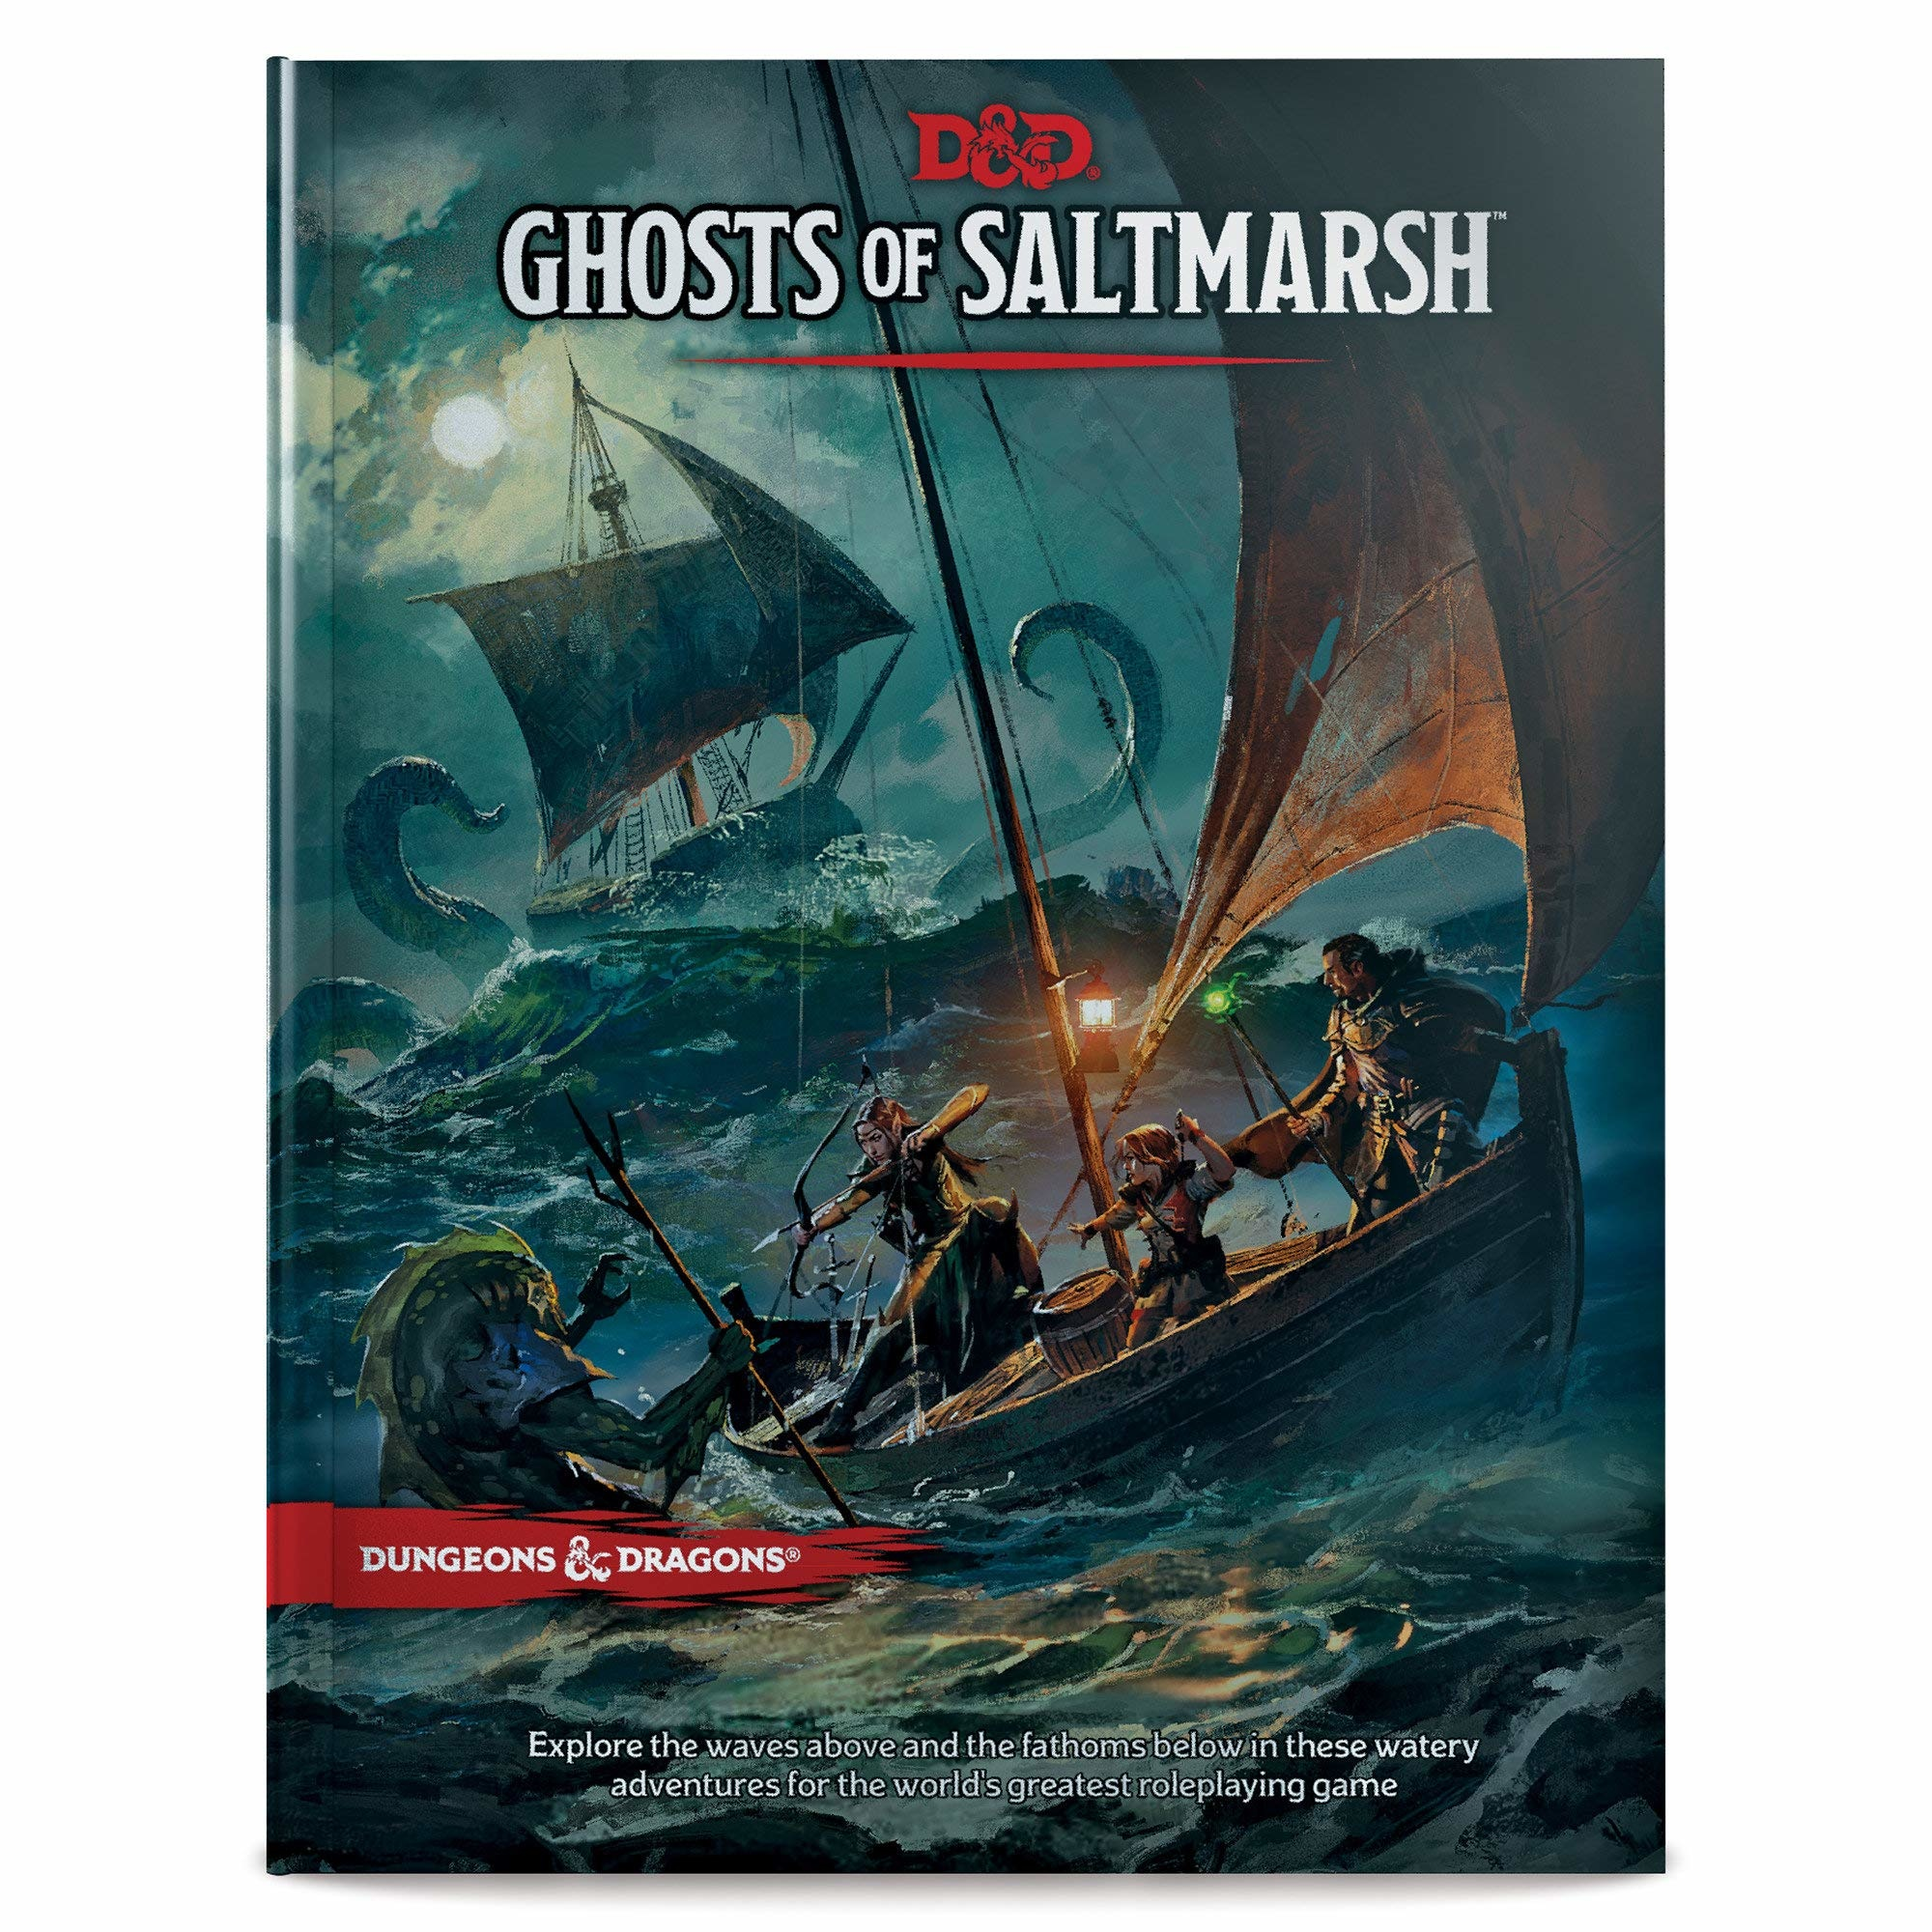 Dungeons & Dragons RPG Dungeons and Dragons RPG: Ghosts of Saltmarsh